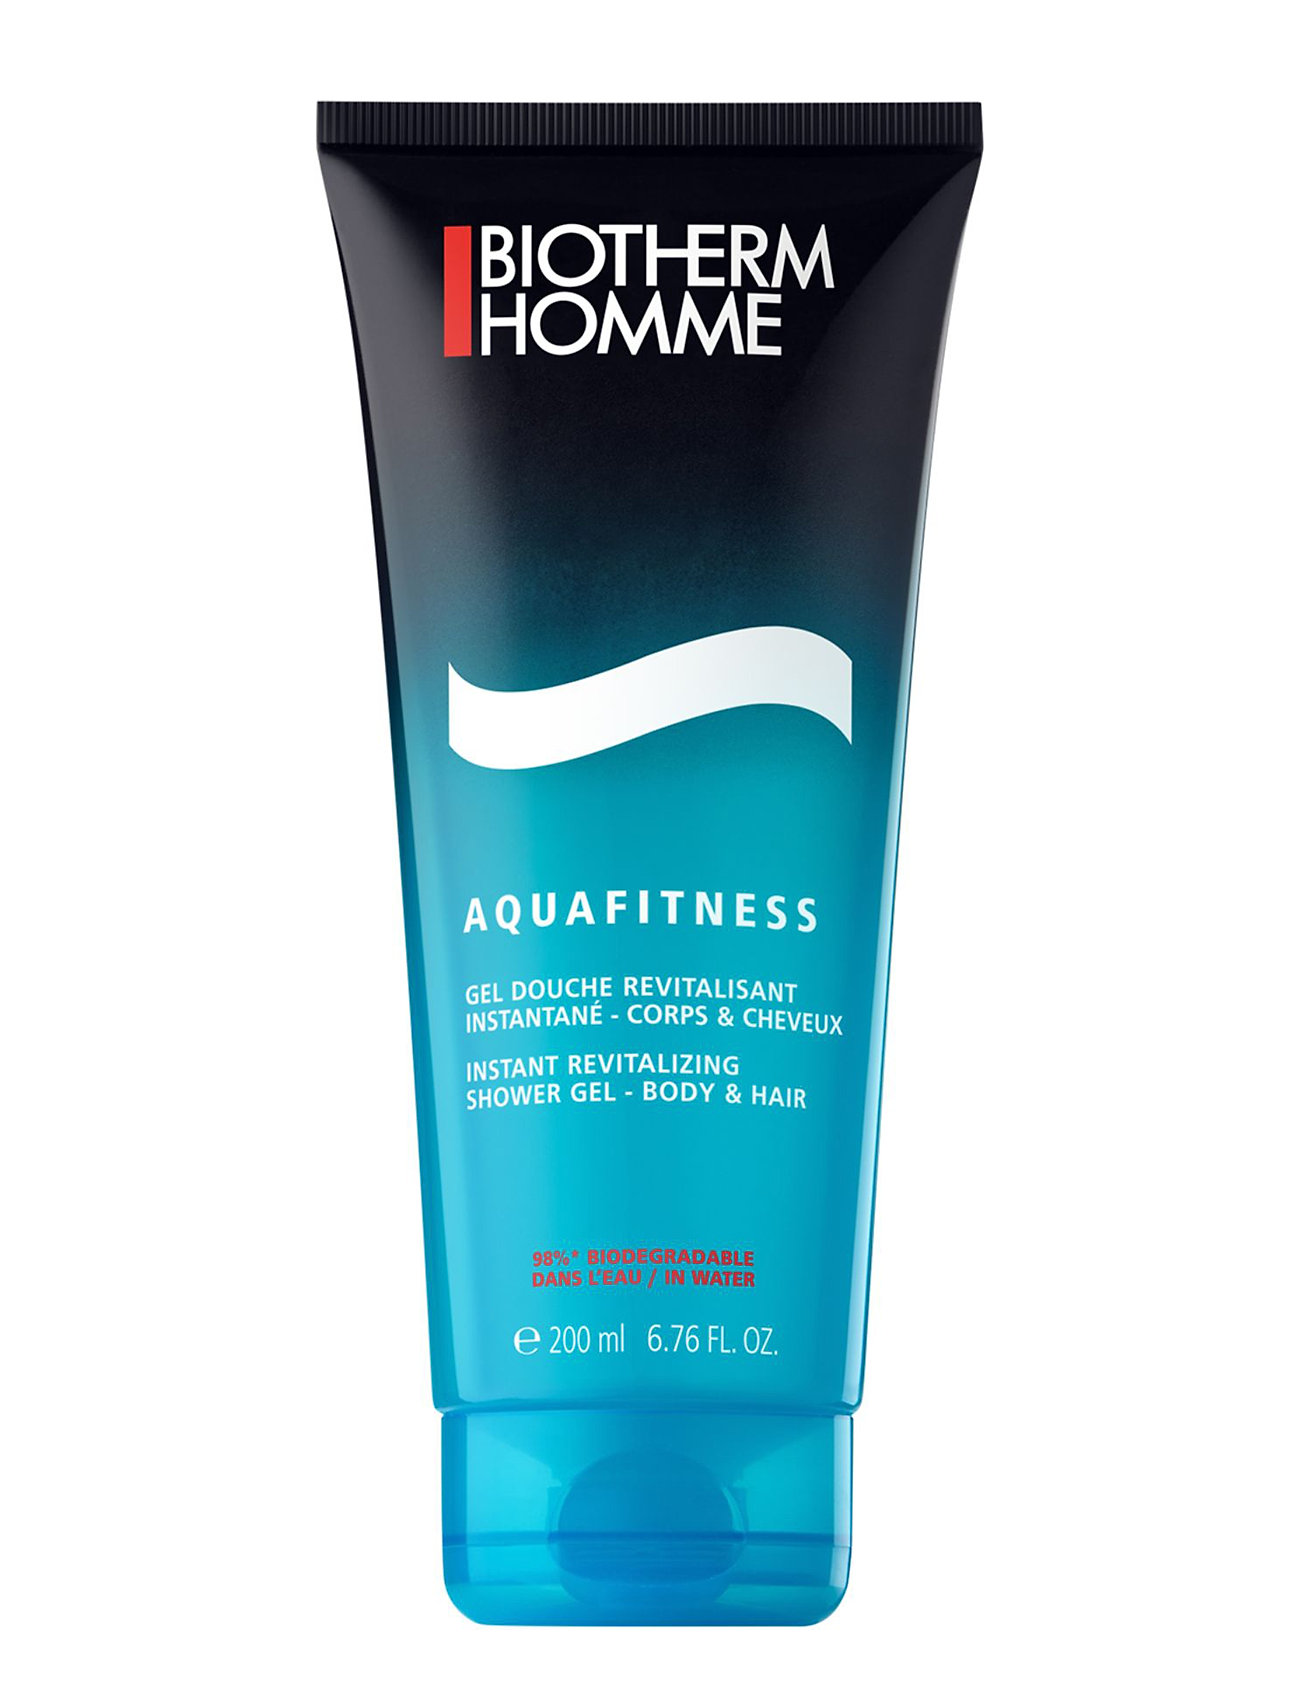 Biotherm Aquafitness Shower Gel Body & Hair 200 ml